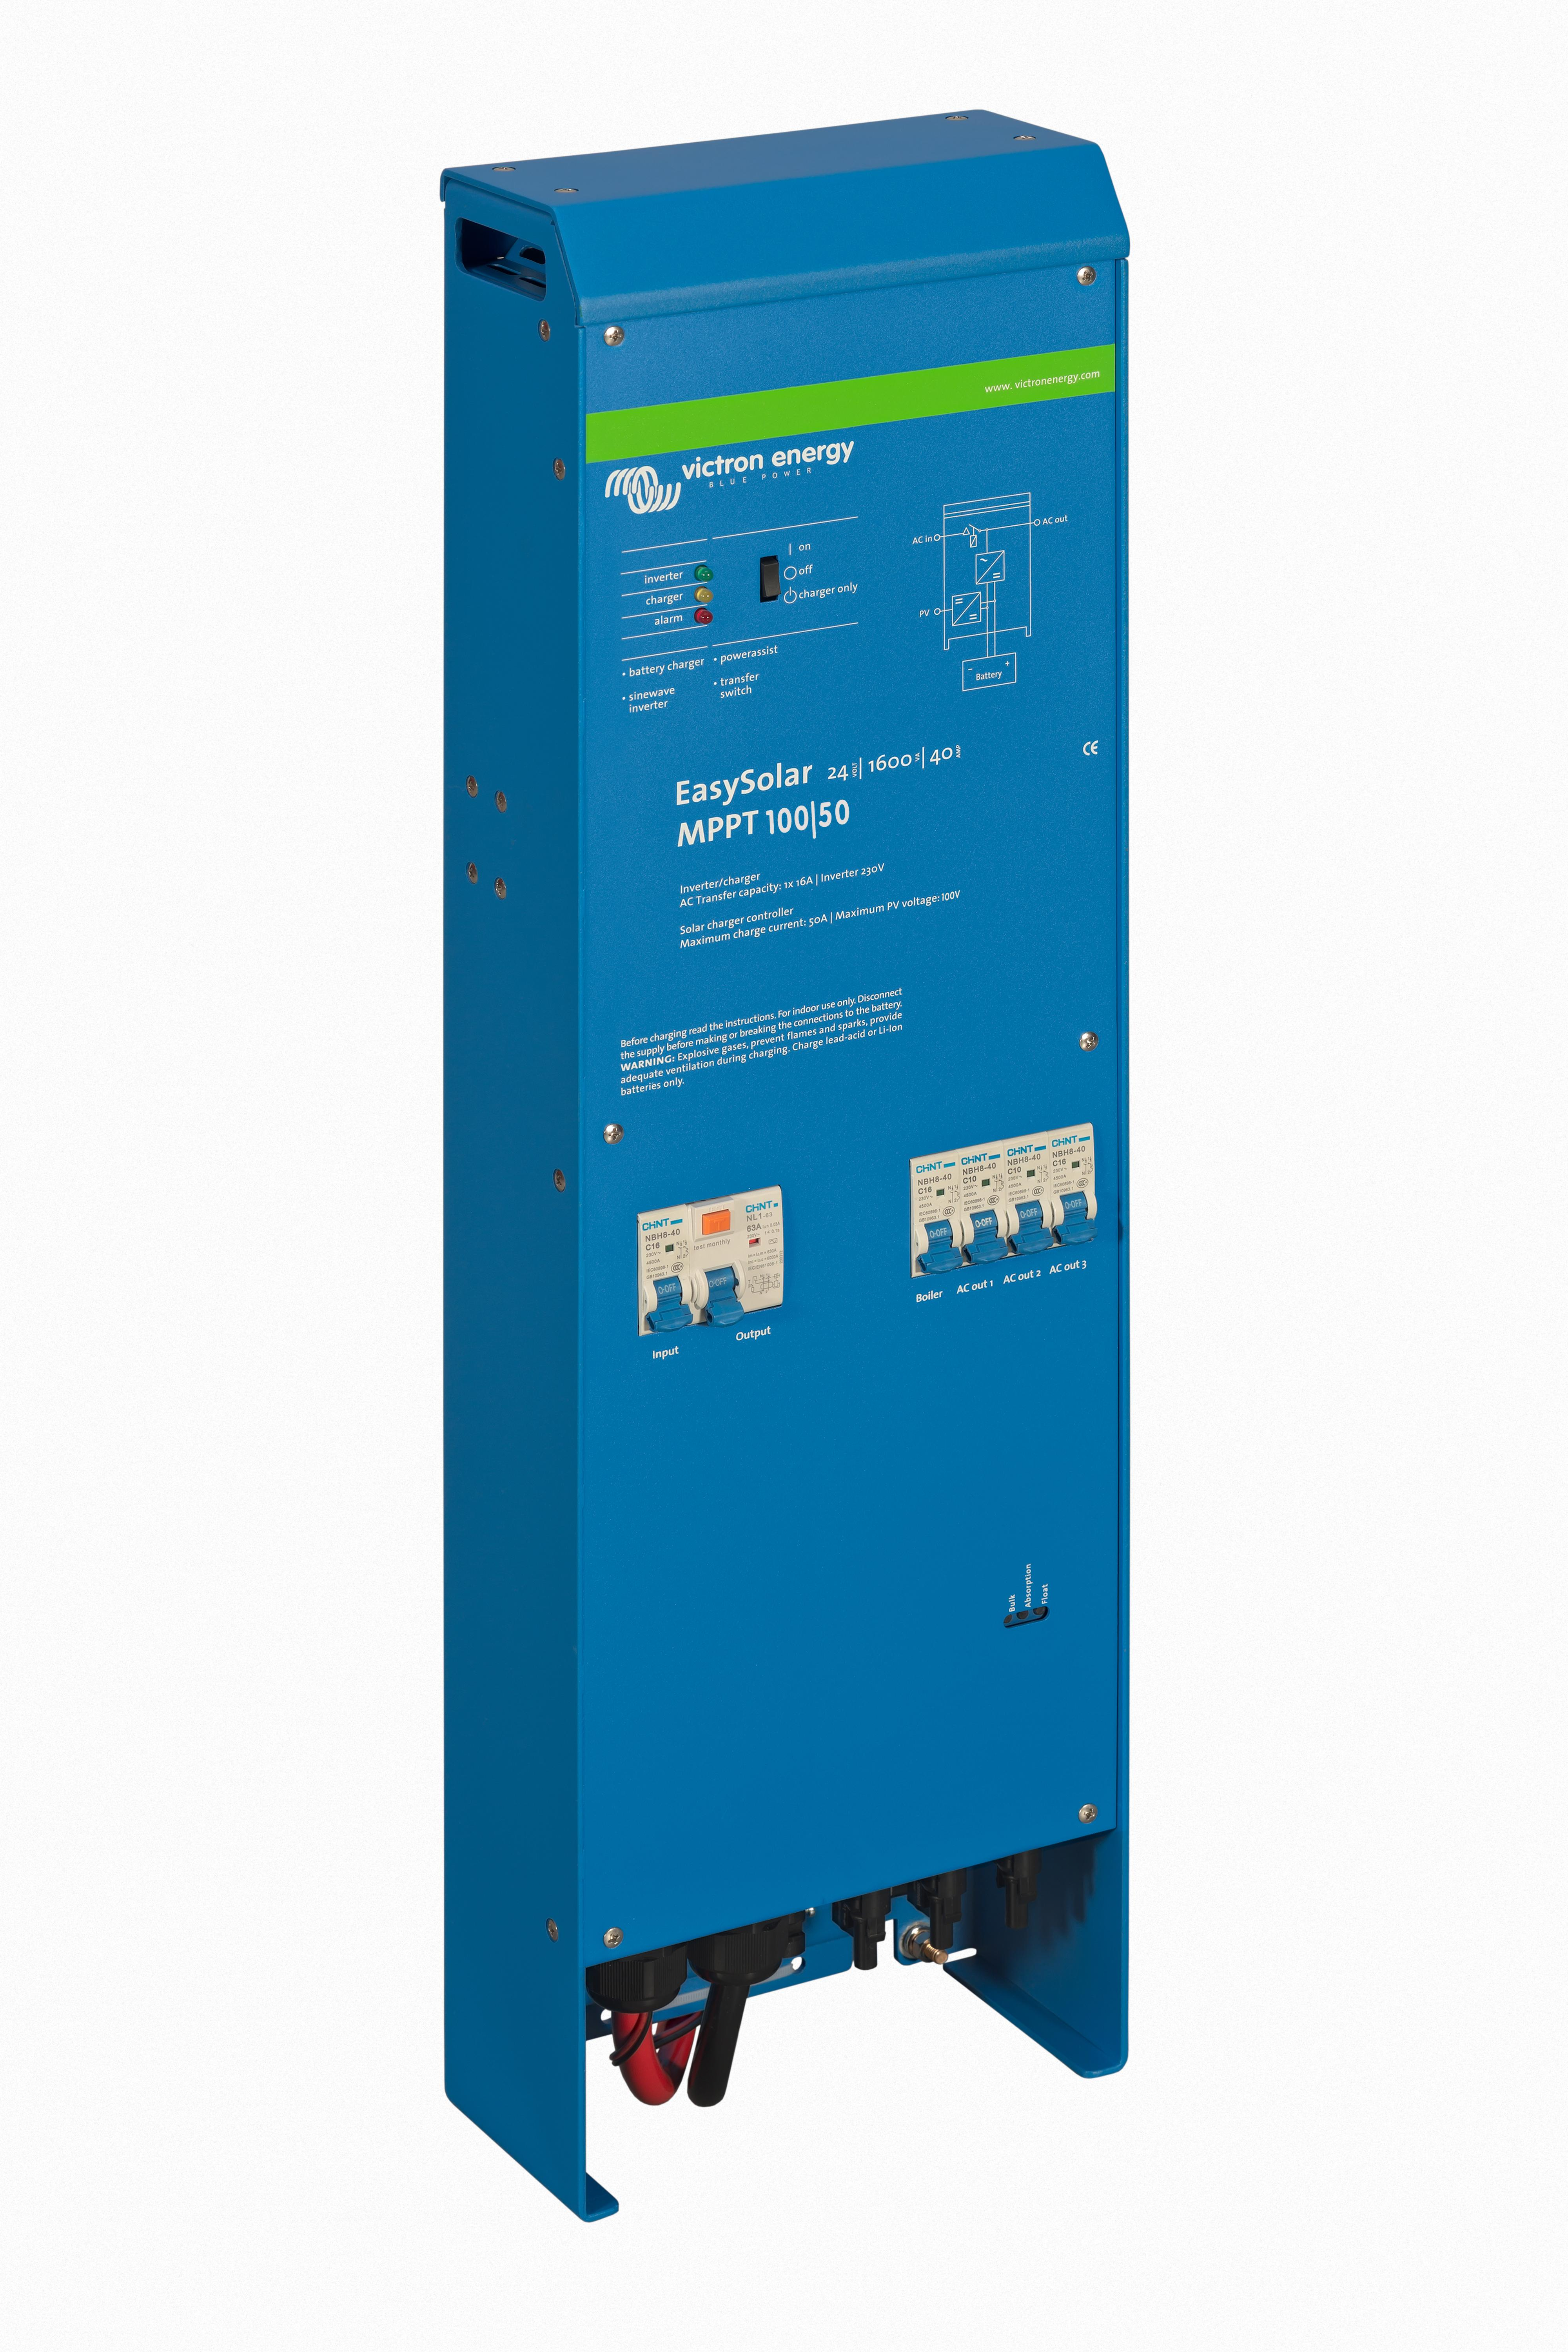 Victron EasySolar All-In-One Inverter / Charger / Solar Controller ...